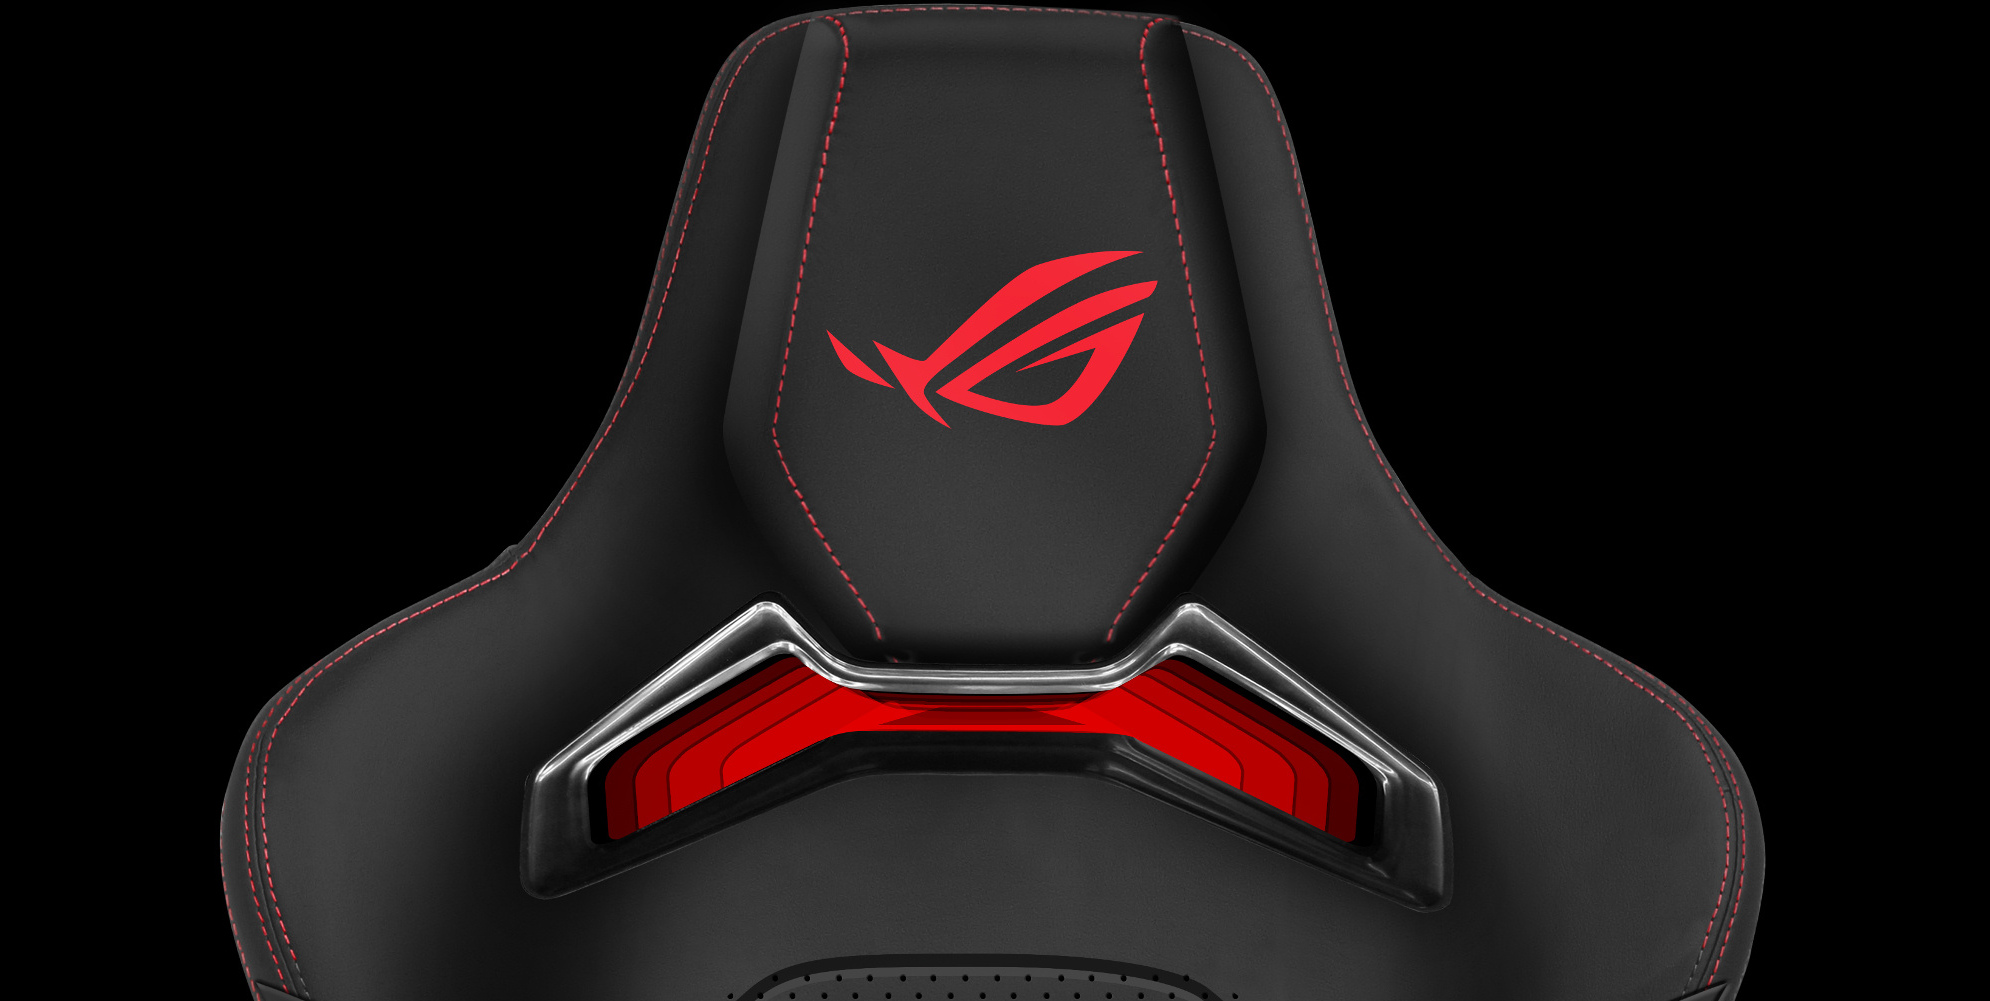 desktop gaming chair used kitchen chairs the rog chariot is decked out in rgb lighting building ultimate setup more than a blazing fast immersive monitor and customized input you also need comfortable throne